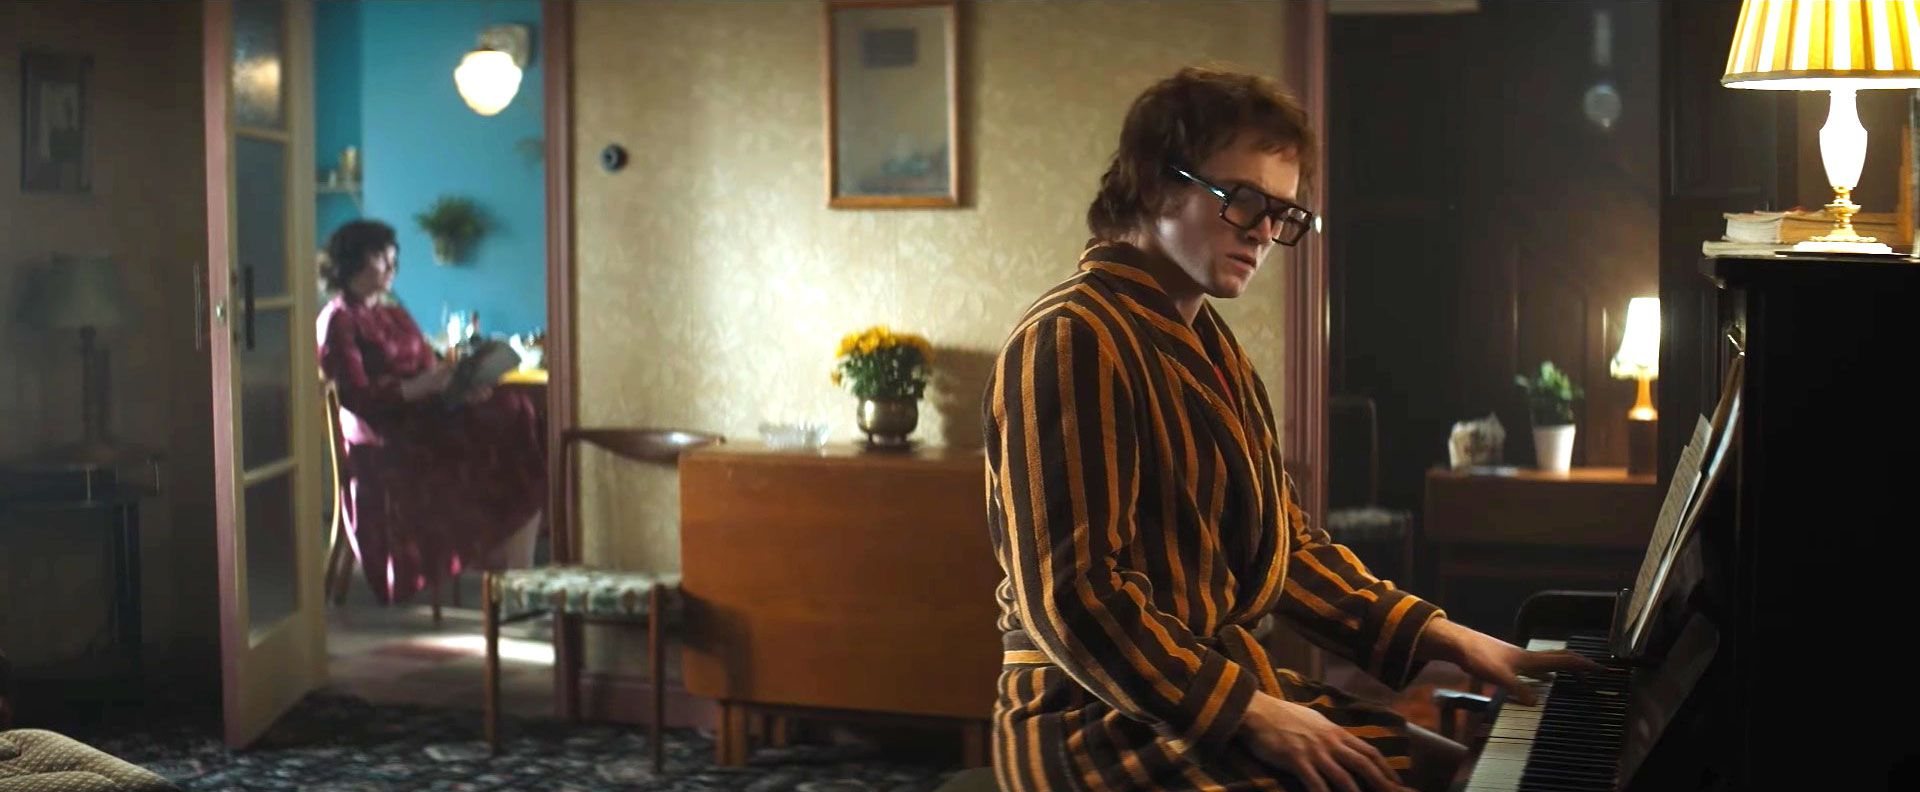 Taron Egerton as Elton John playing piano in his parents house in Rocketman filmsets